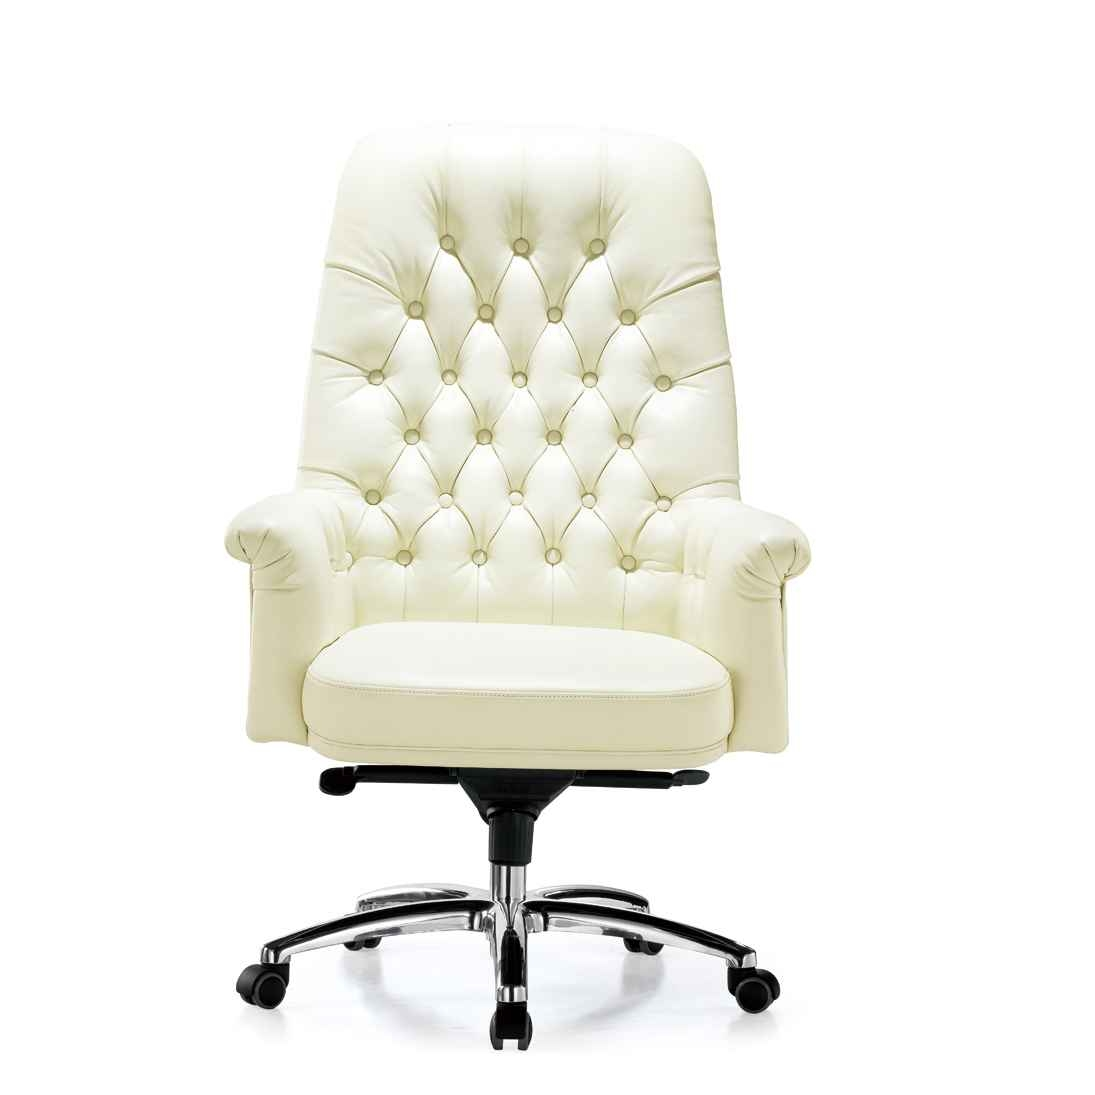 desk chairs white bedroom chair perth leather ideas on foter executive office